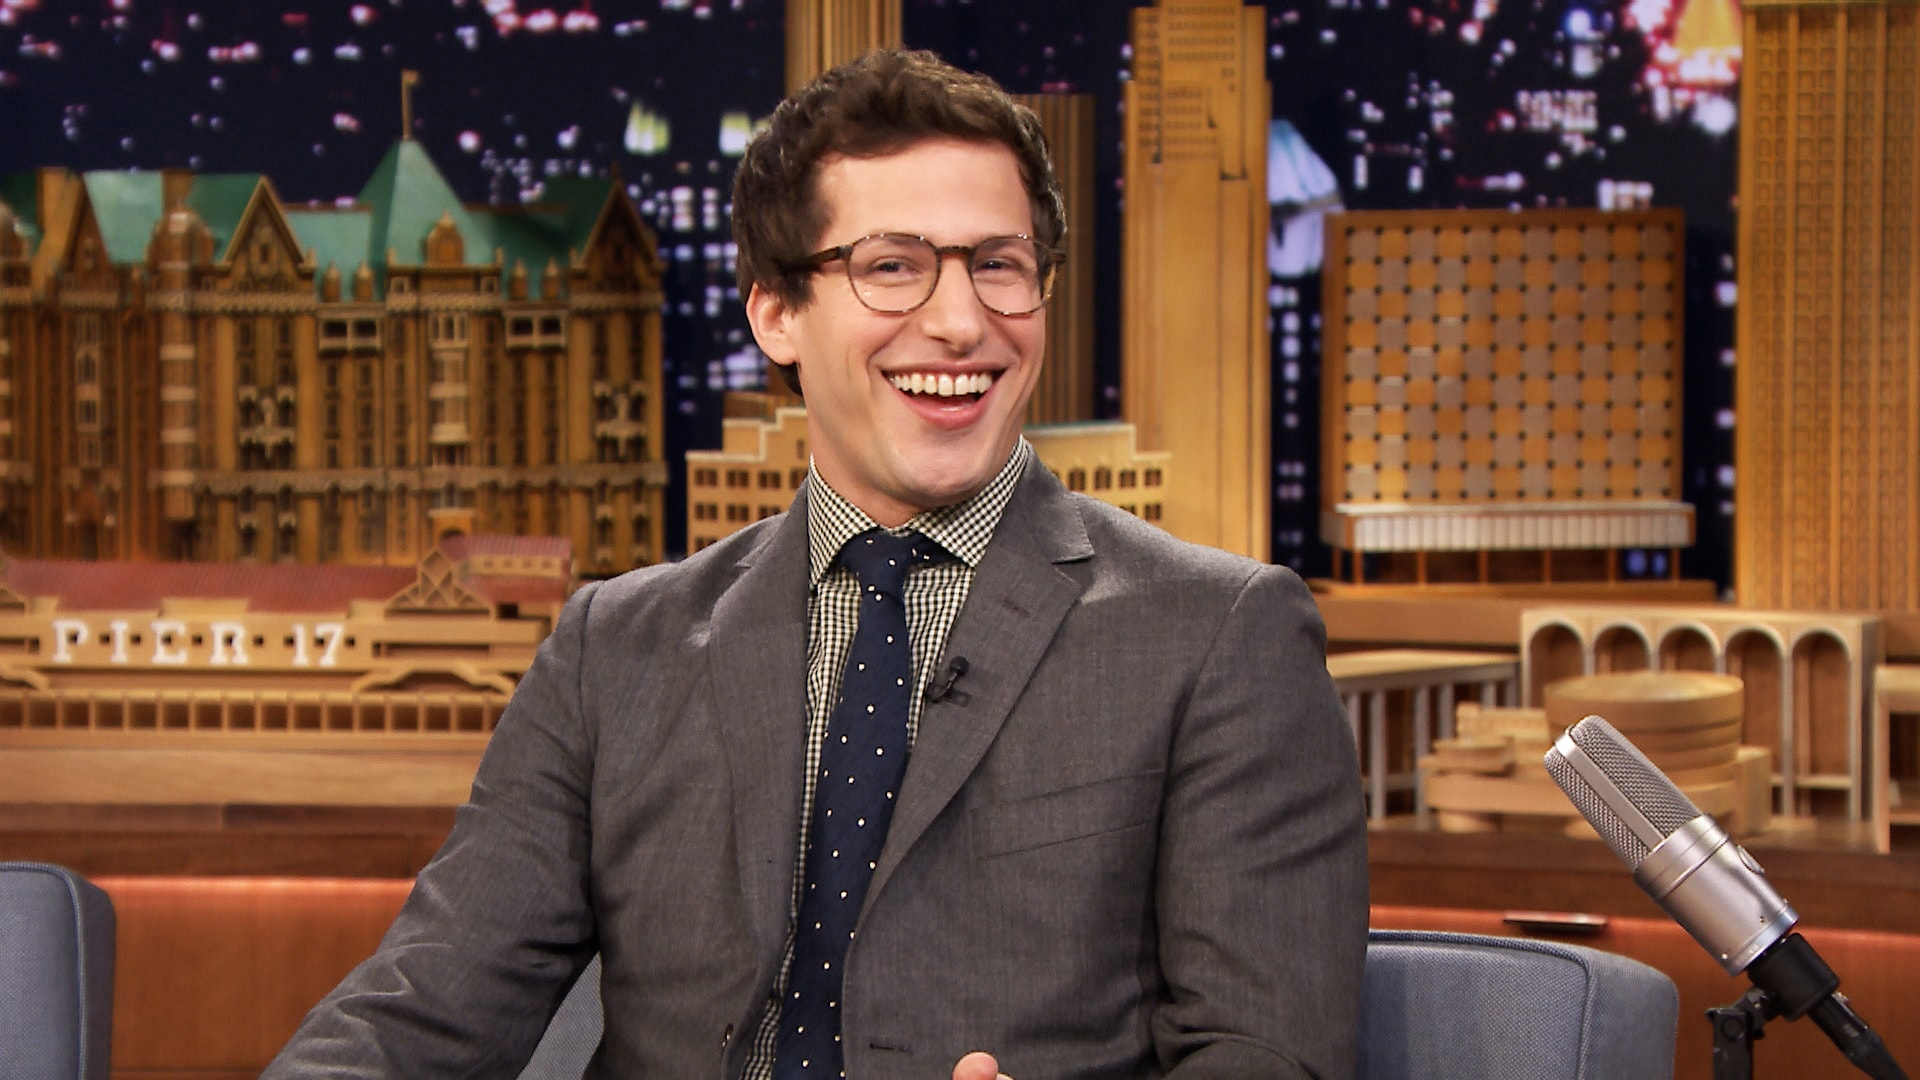 Andy Samberg Full hd wallpapers